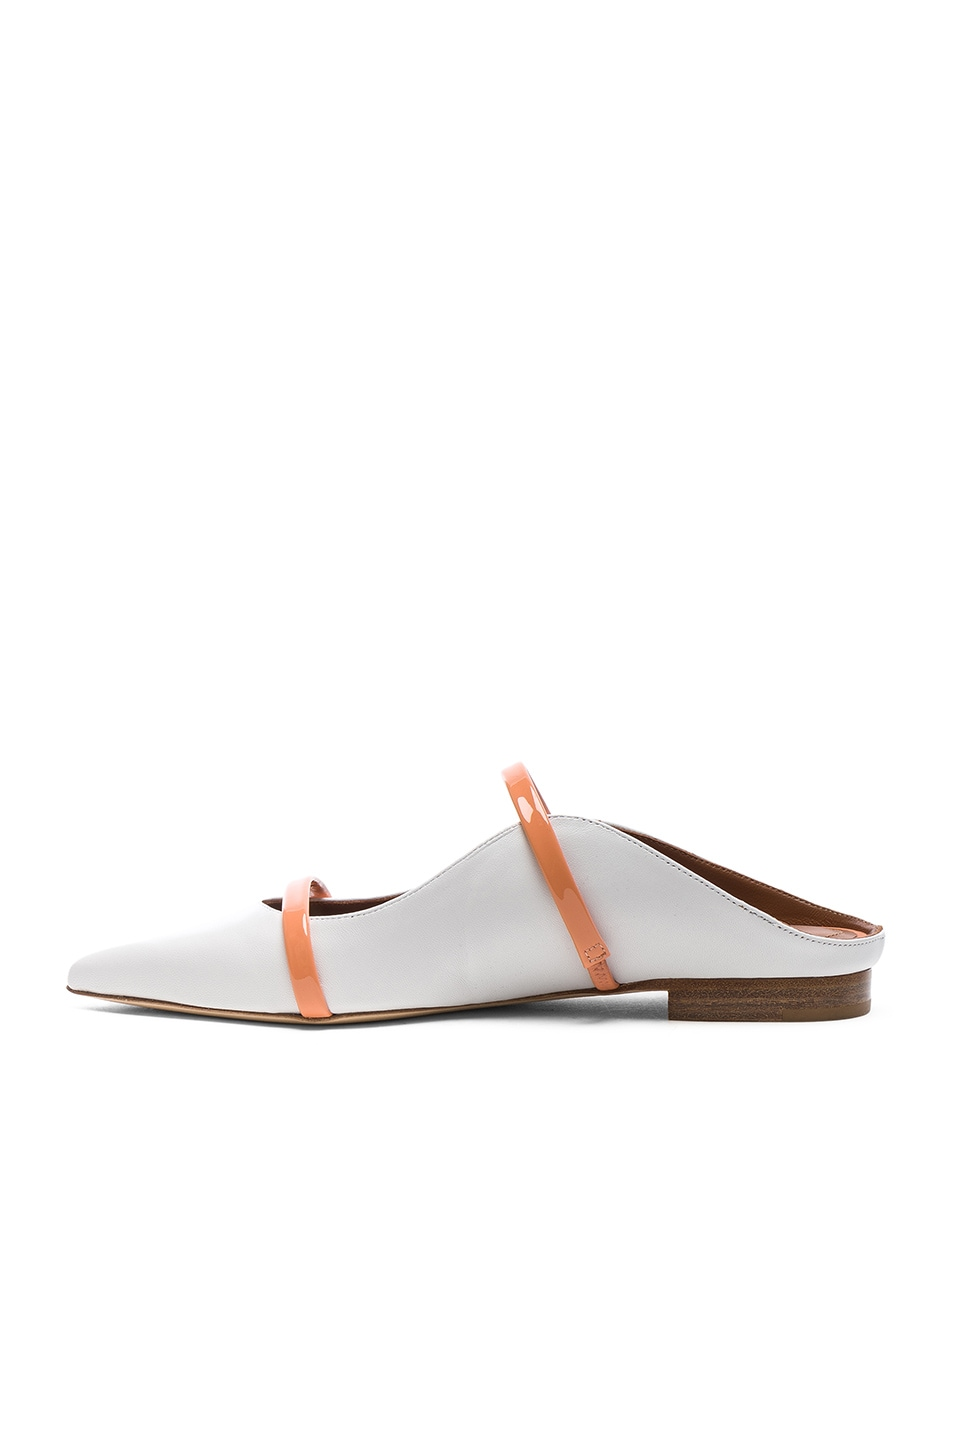 Image 5 of Malone Souliers Maureen Flat in White & Peach